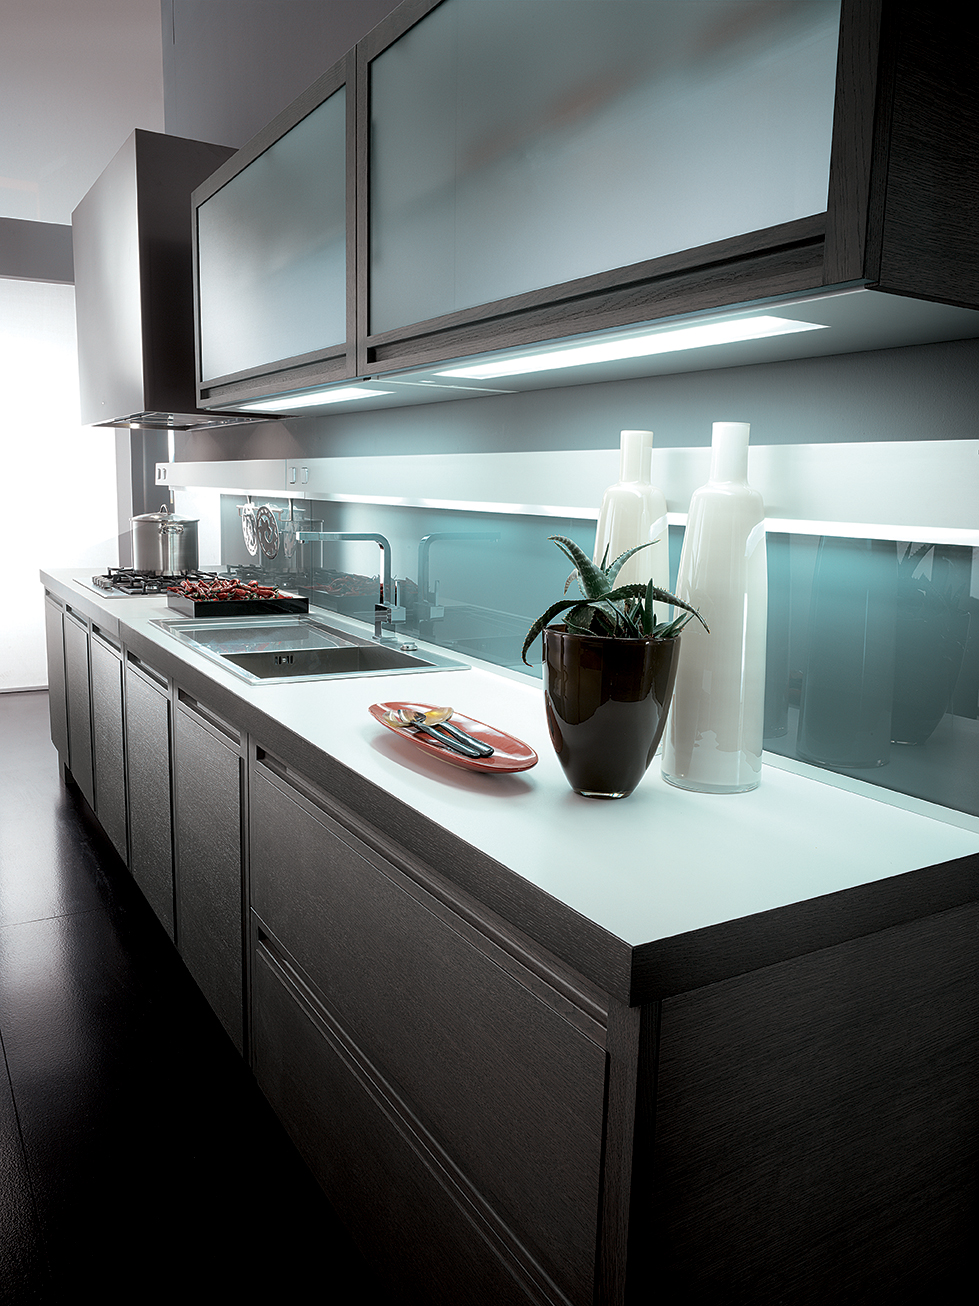 Milano cuisine lin aire by biefbi design fred allison for Cuisine lineaire 4 metres